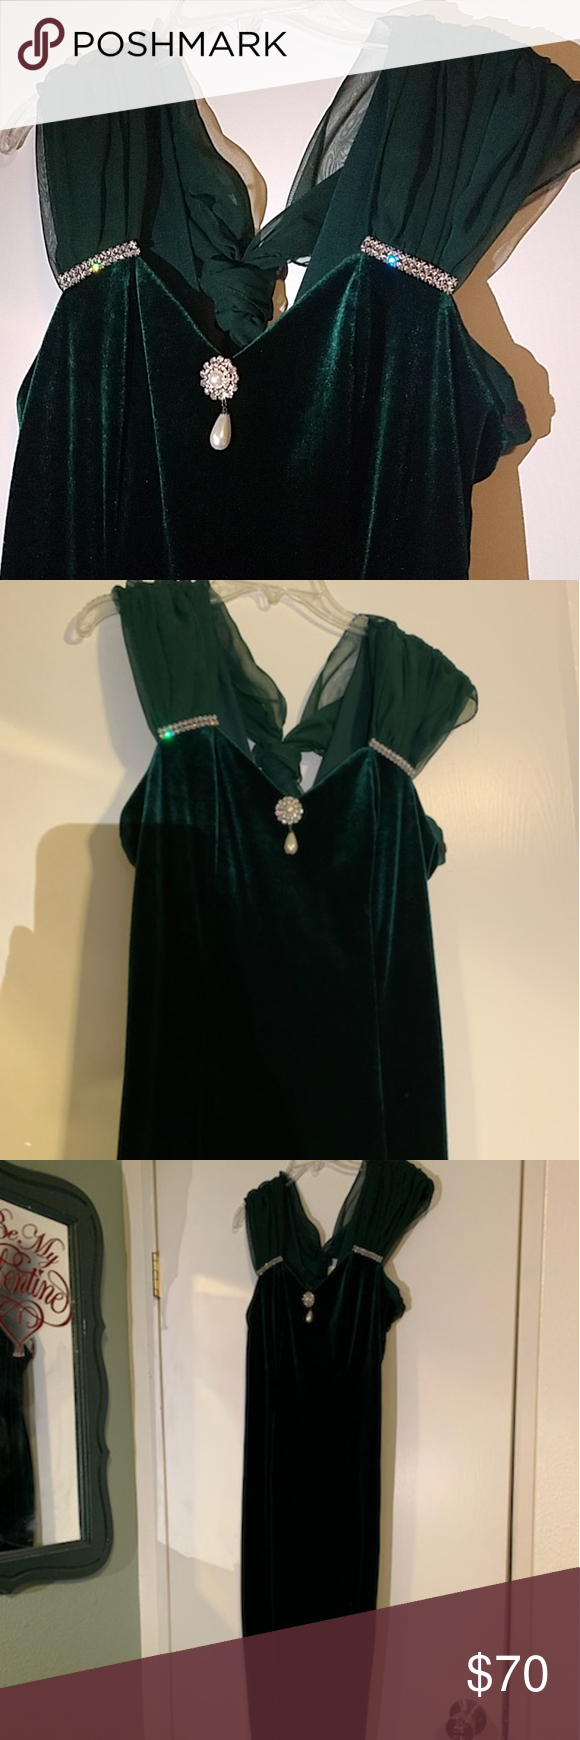 Crushed velvet green dress Used once, these pictures dont do justice to this dress it us beautiful inperson and the stones shine so much! No holes or rips. poly fashion Dresses